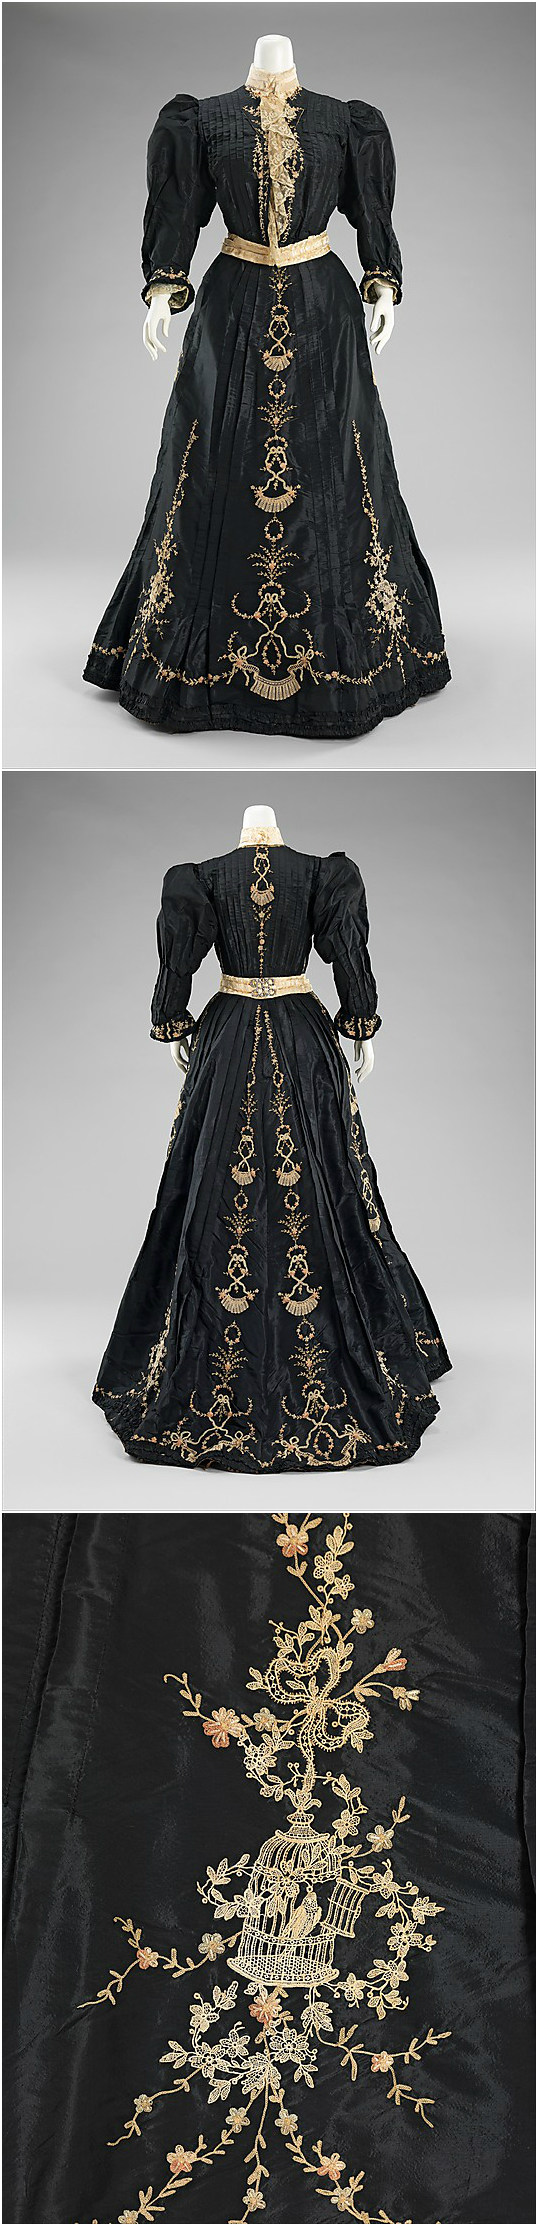 Dinner dress, 1890-95, at the Met. See: http://www.metmuseum.org/collection/the-collection-online/search/159292?rpp=60&pg=18&ao=on&ft=*&deptids=8&when=A.D.%2B1800-1900&what=Dresses&pos=1030&imgNo=0&tabName=gallery-label